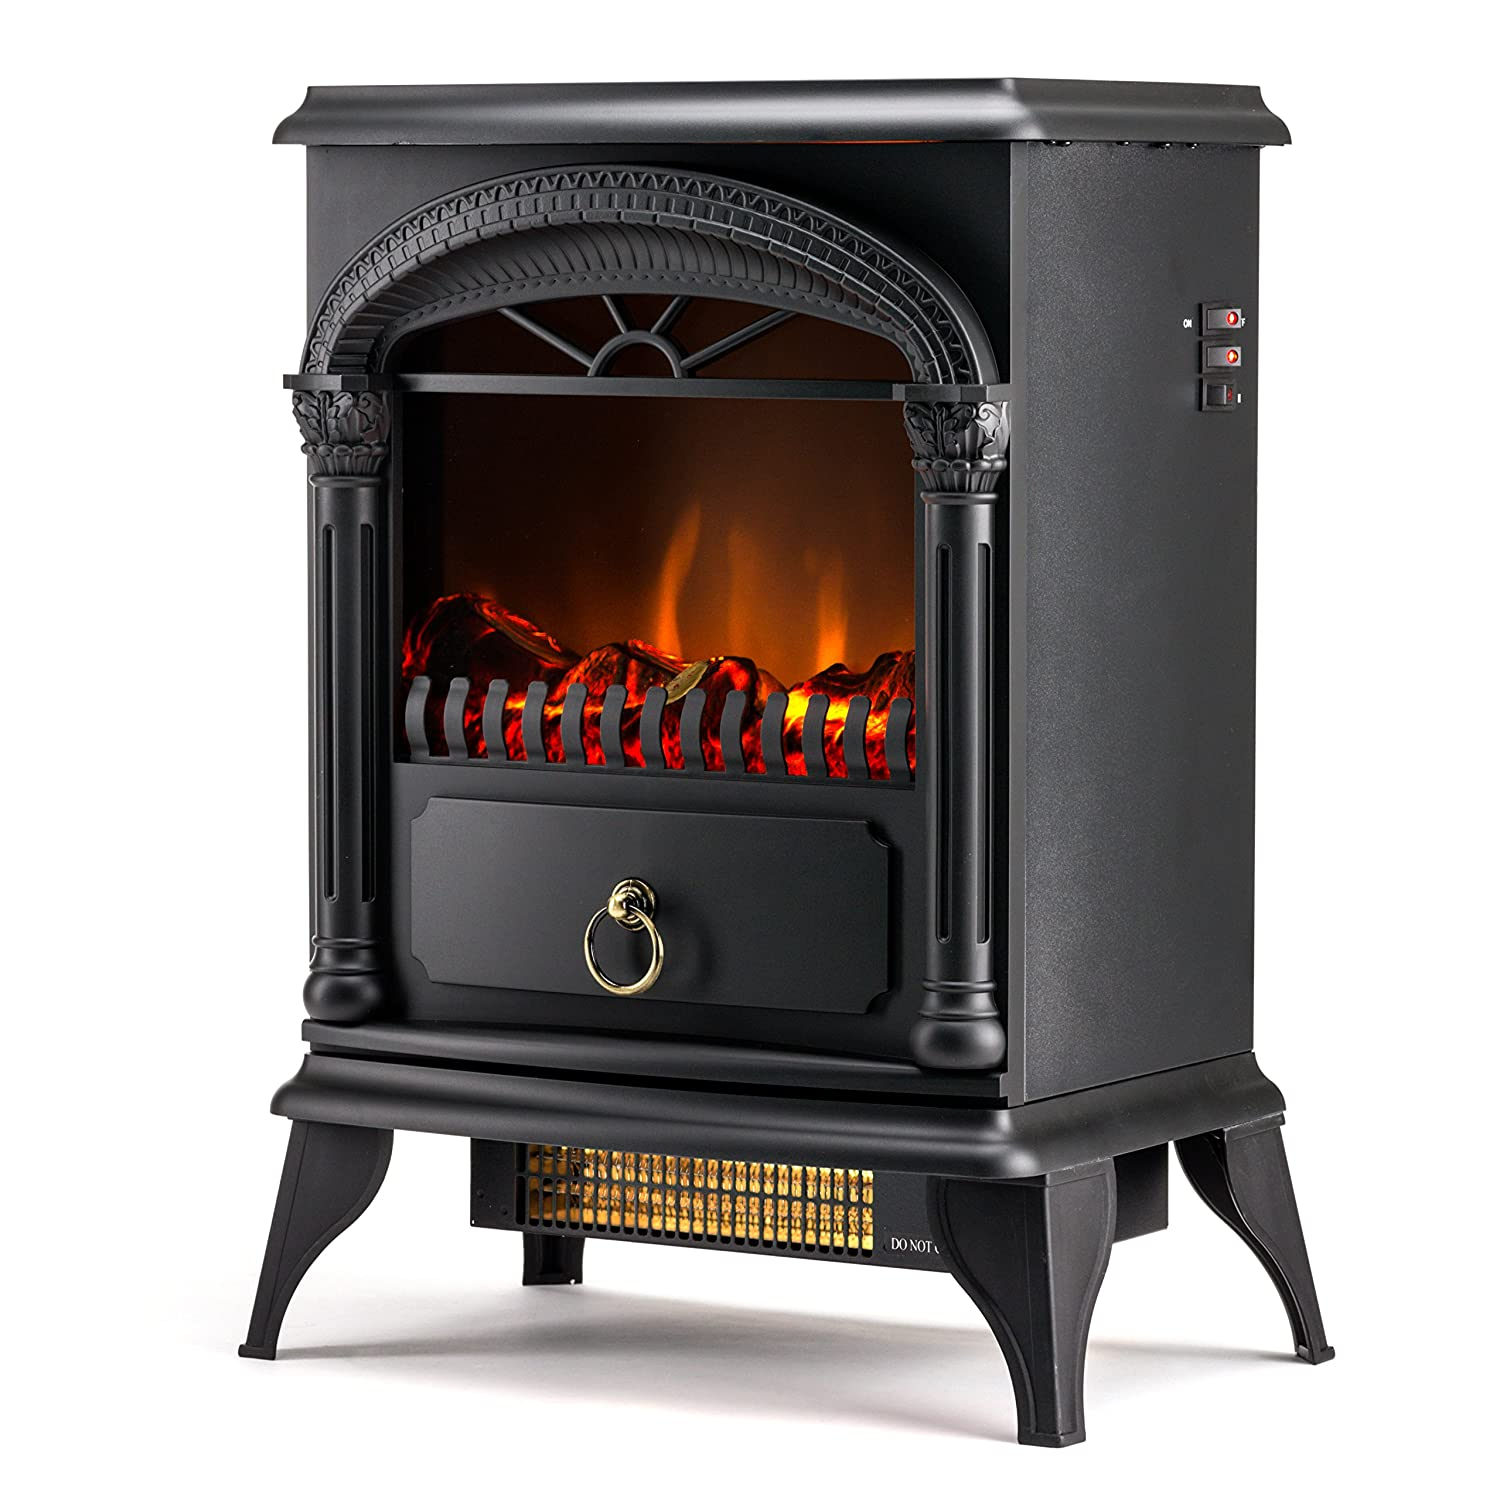 Large 1500w Heat Adjustable Electric Portable Fireplace